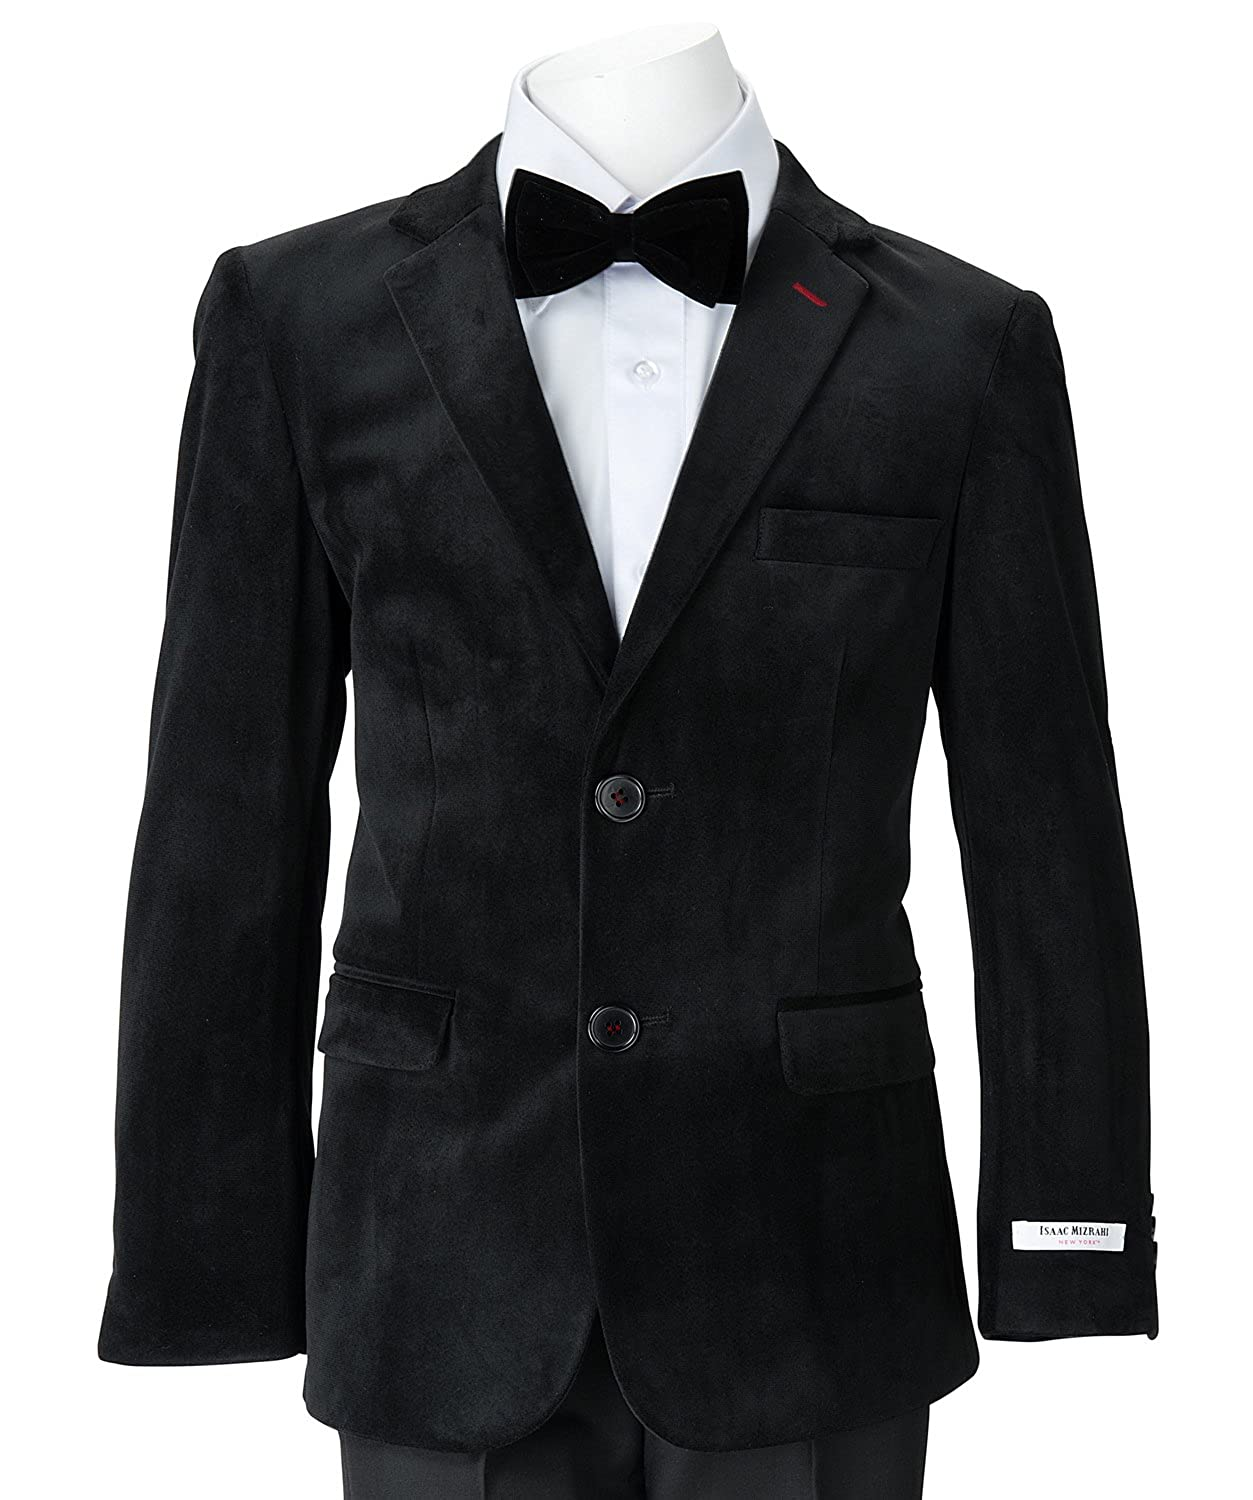 Isaac Mizrahi Little Boys' Single-Breasted Velvet Blazer Jacket for Holiday etc. Weddings Birthday Parties 6 148-6